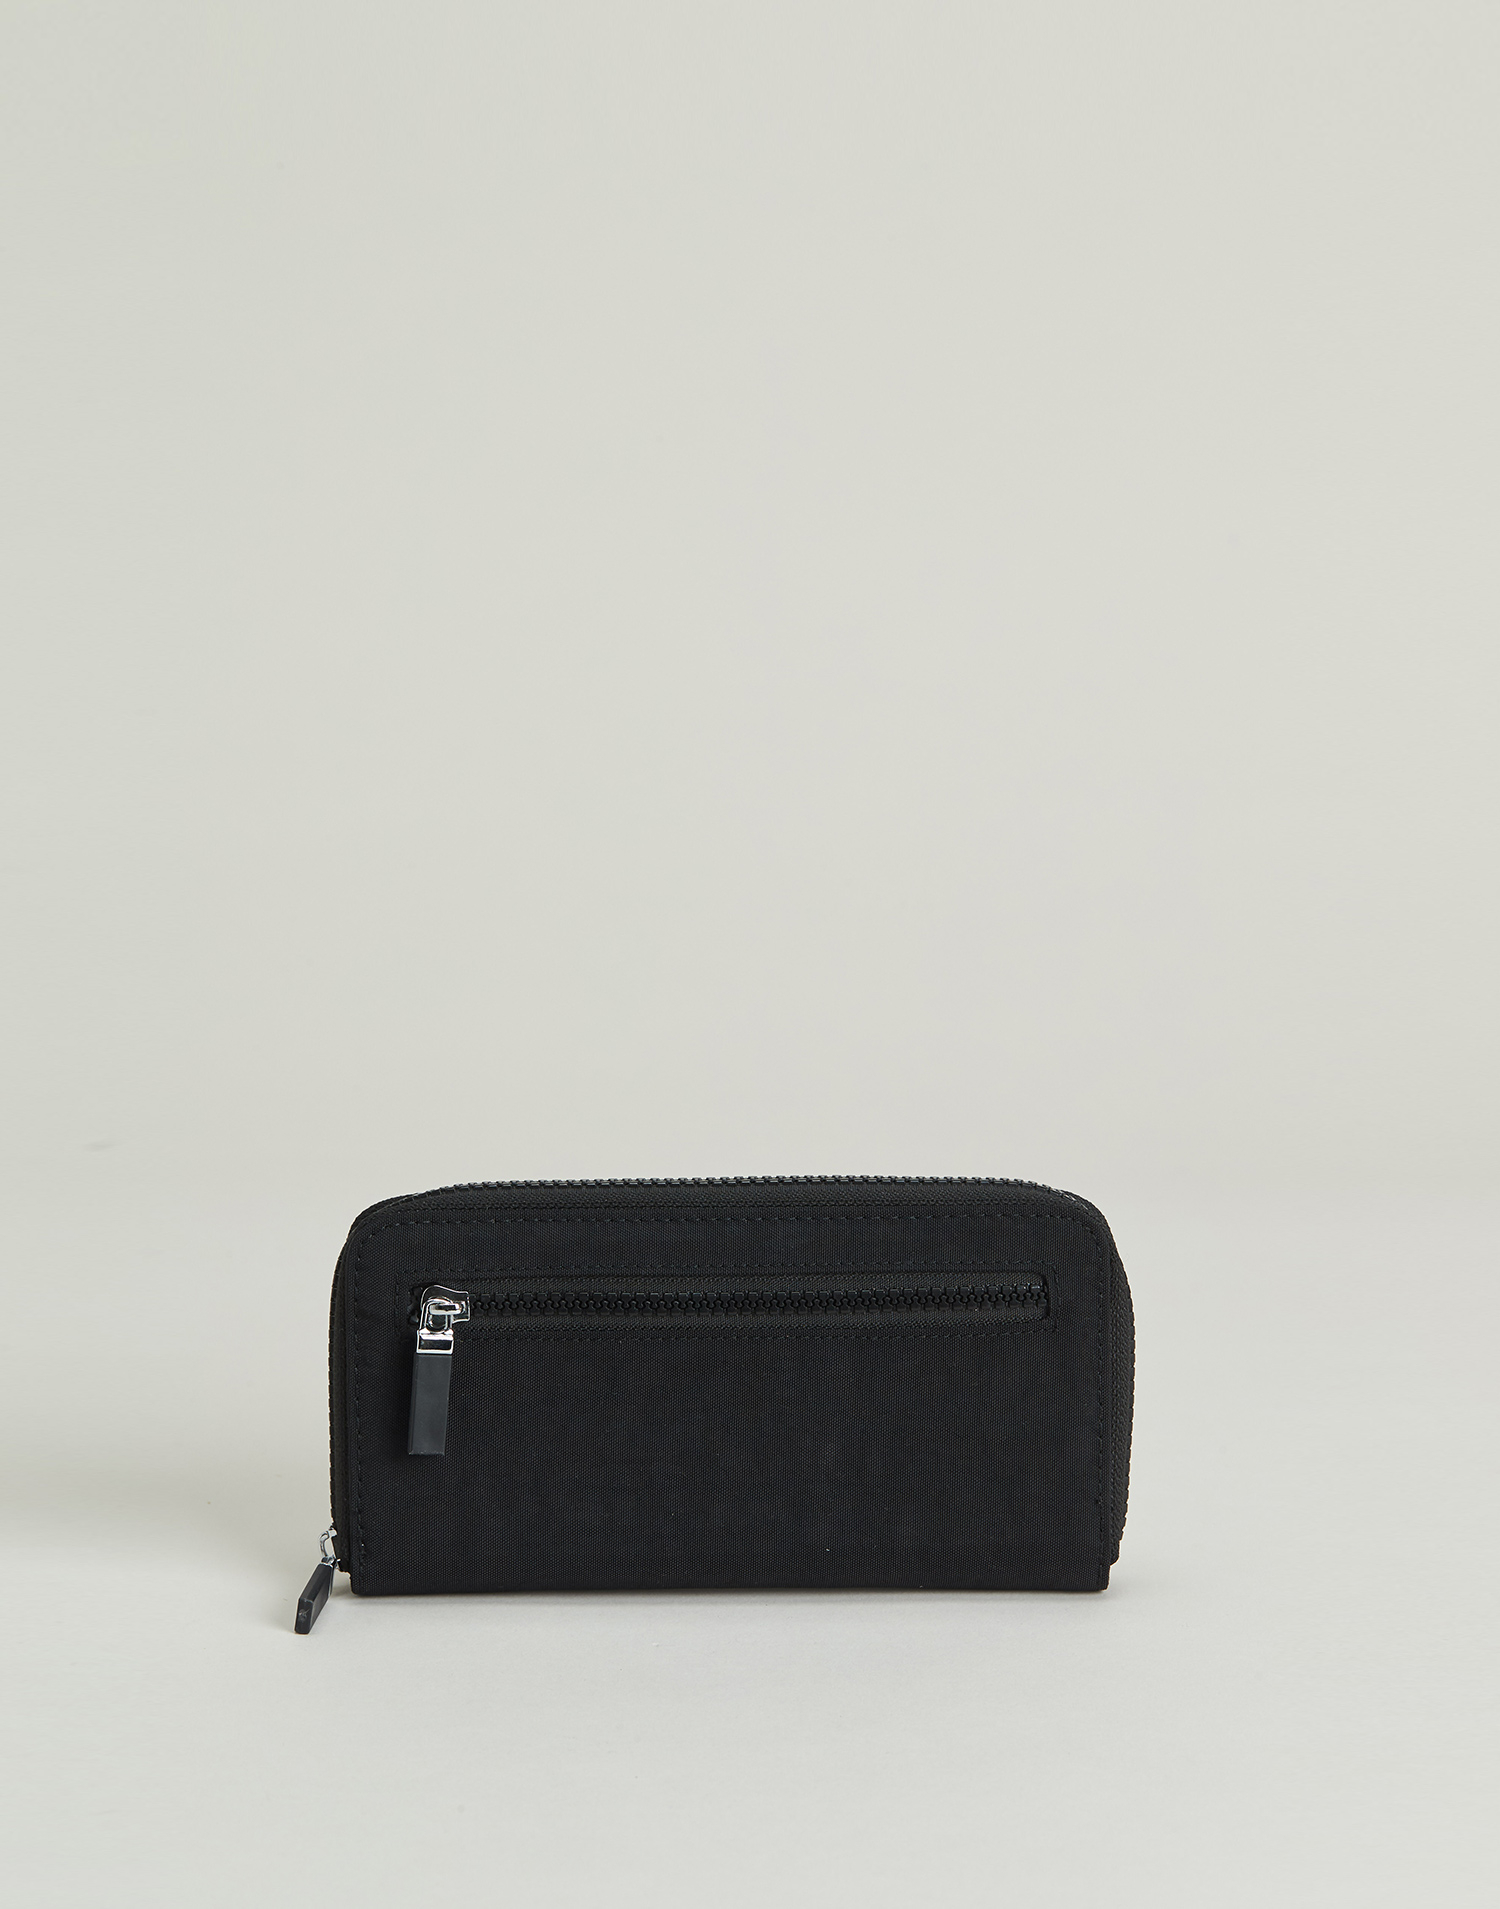 Cartera rectangular básica